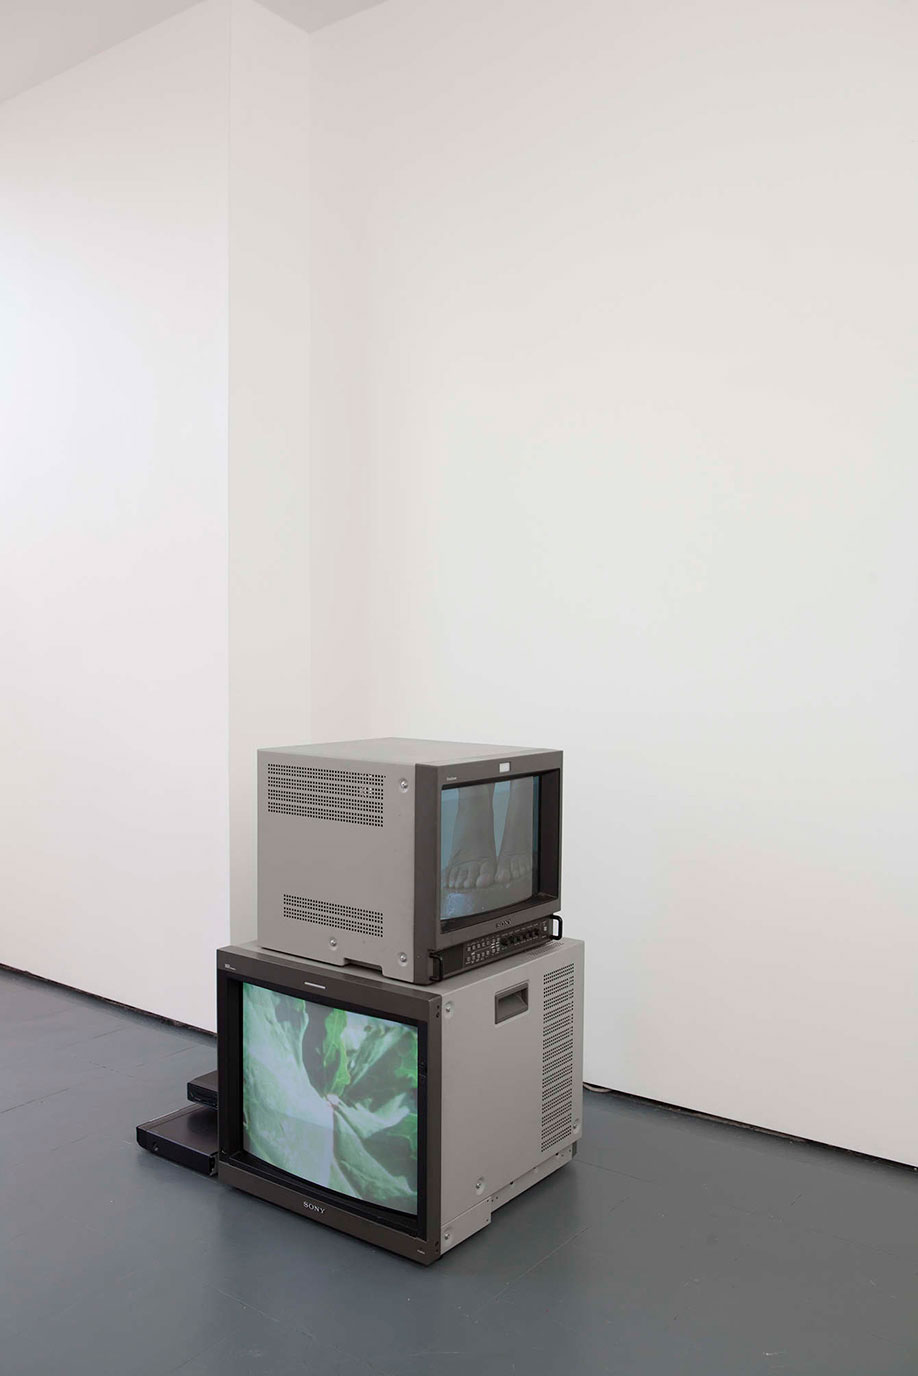 <b>Title: </b>Hold Me Tight And Let Me Go<br /><b>Year: </b>2013<br /><b>Medium: </b>Two channel video and box monitors<br /><b>Size: </b>Dimensions variable